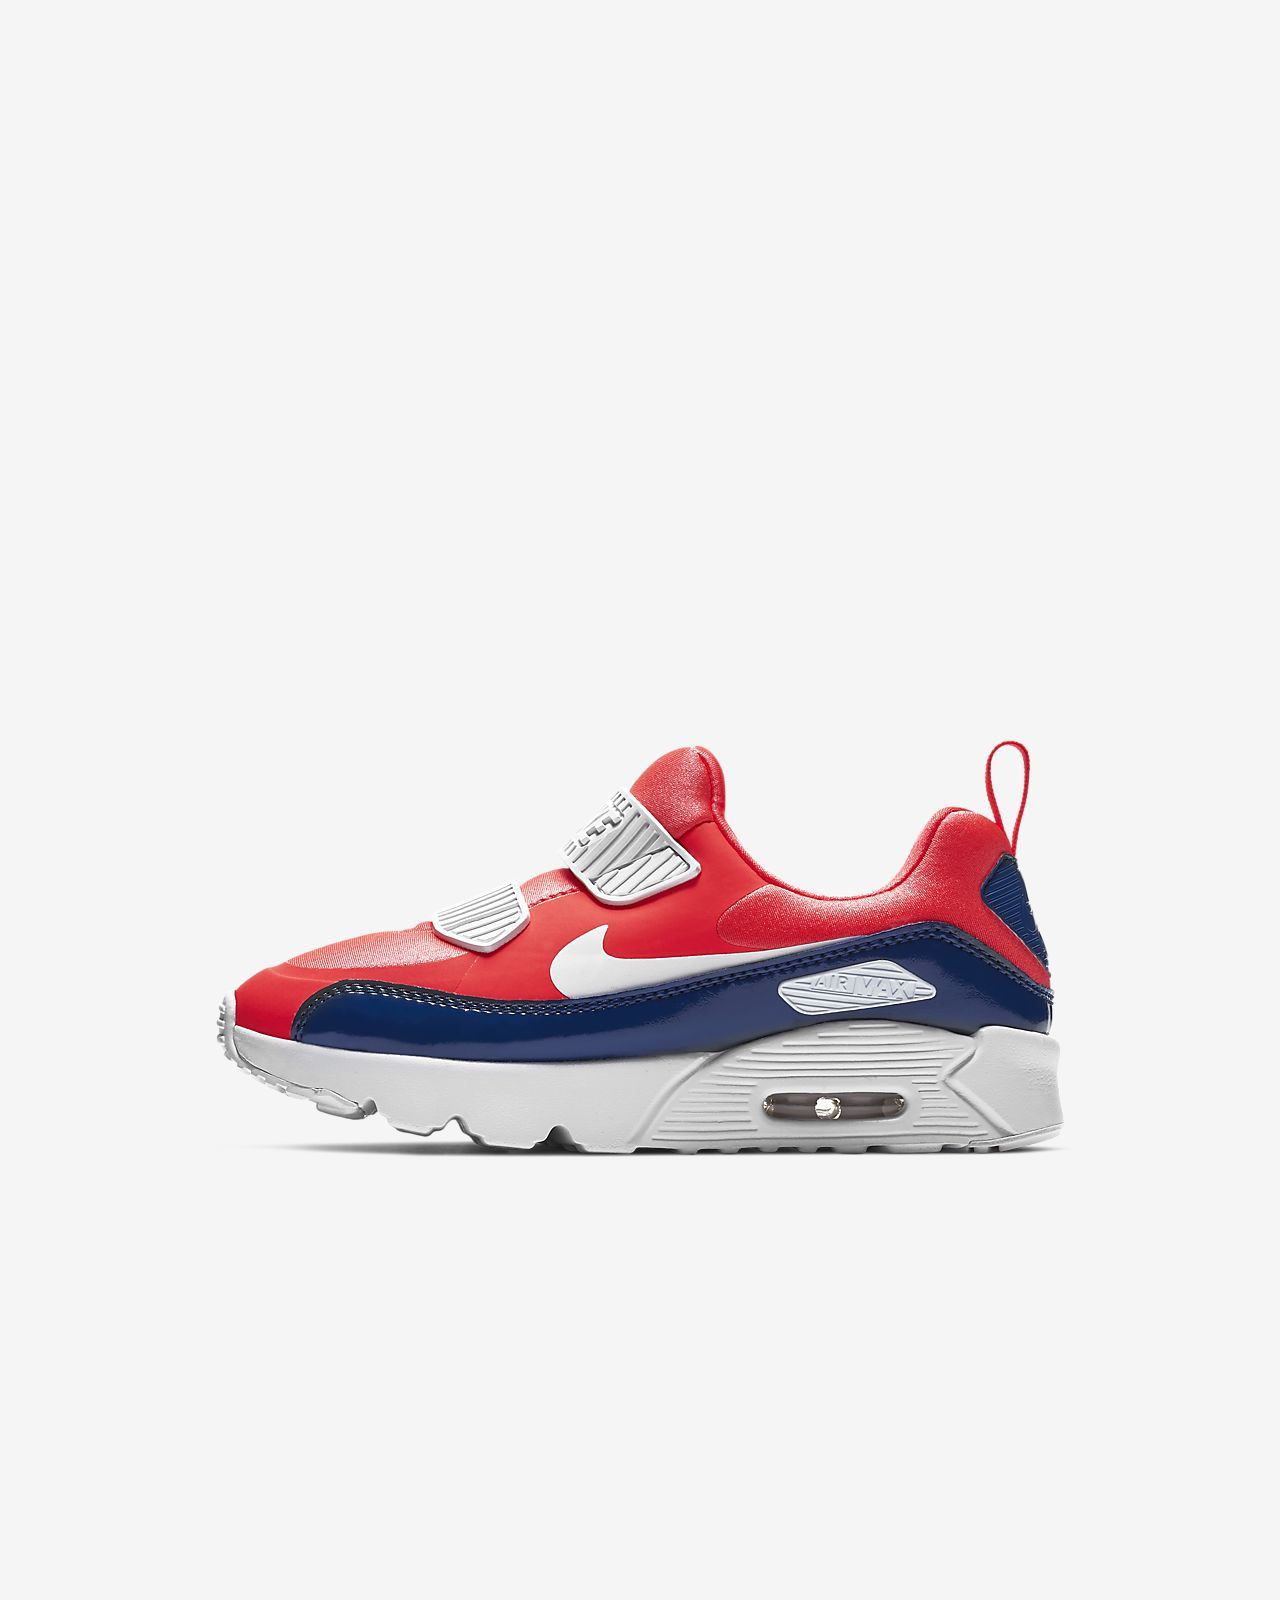 5f13a968193 Nike Air Max Tiny 90 Younger Kids  Shoe. Nike.com IN